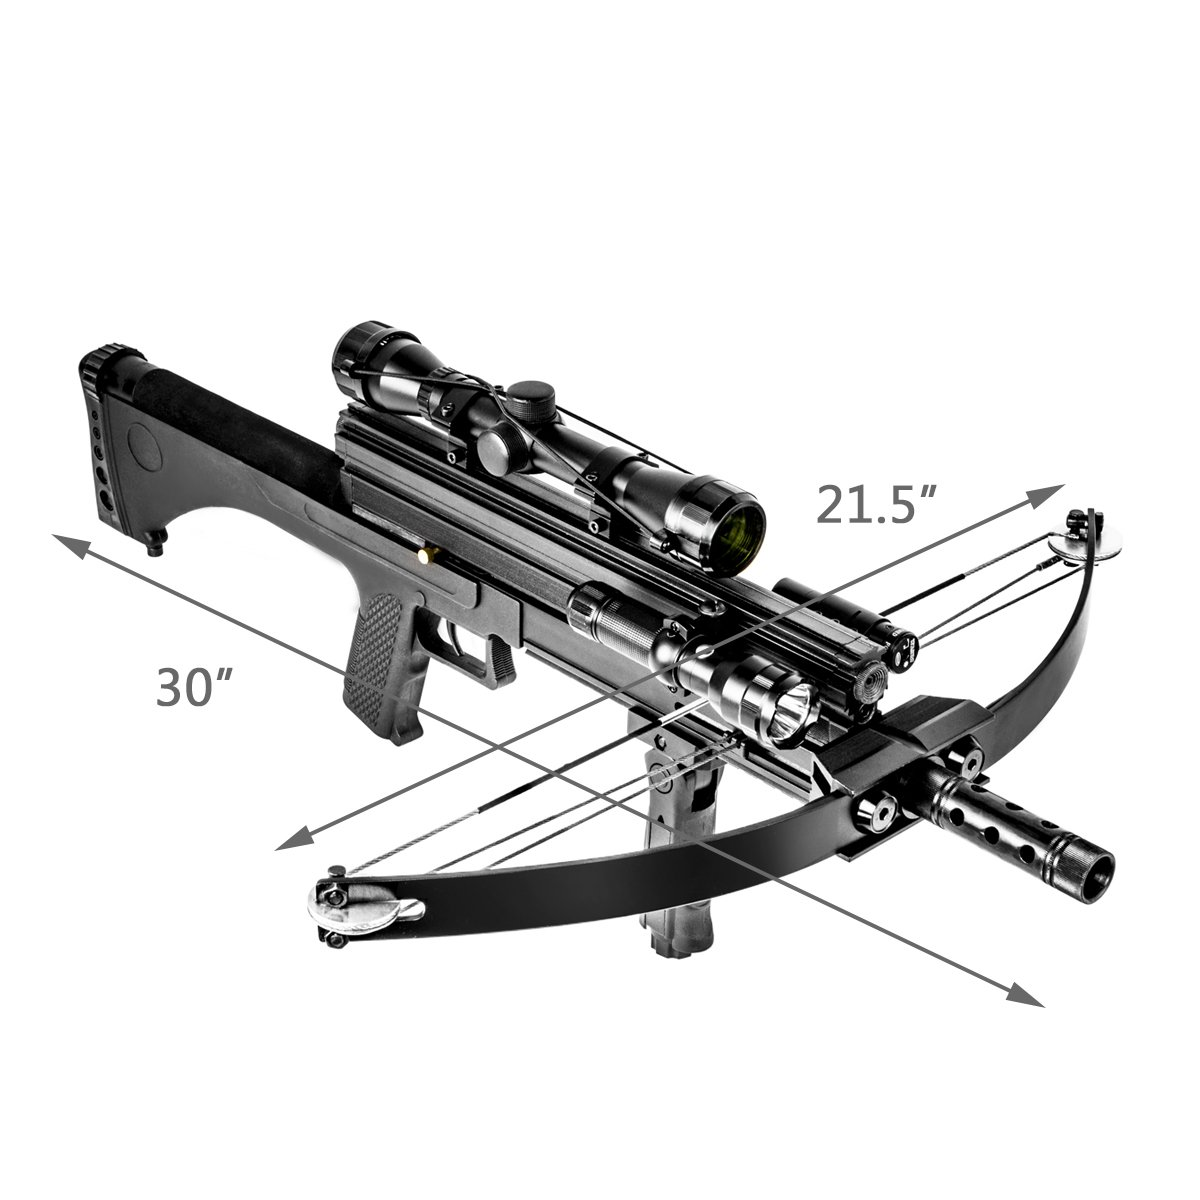 XtremepowerUS Multifunctional Crossbow 80 lbs 160 fps Hunting Equipment 200 Magazine Capacity by XtremepowerUS (Image #2)